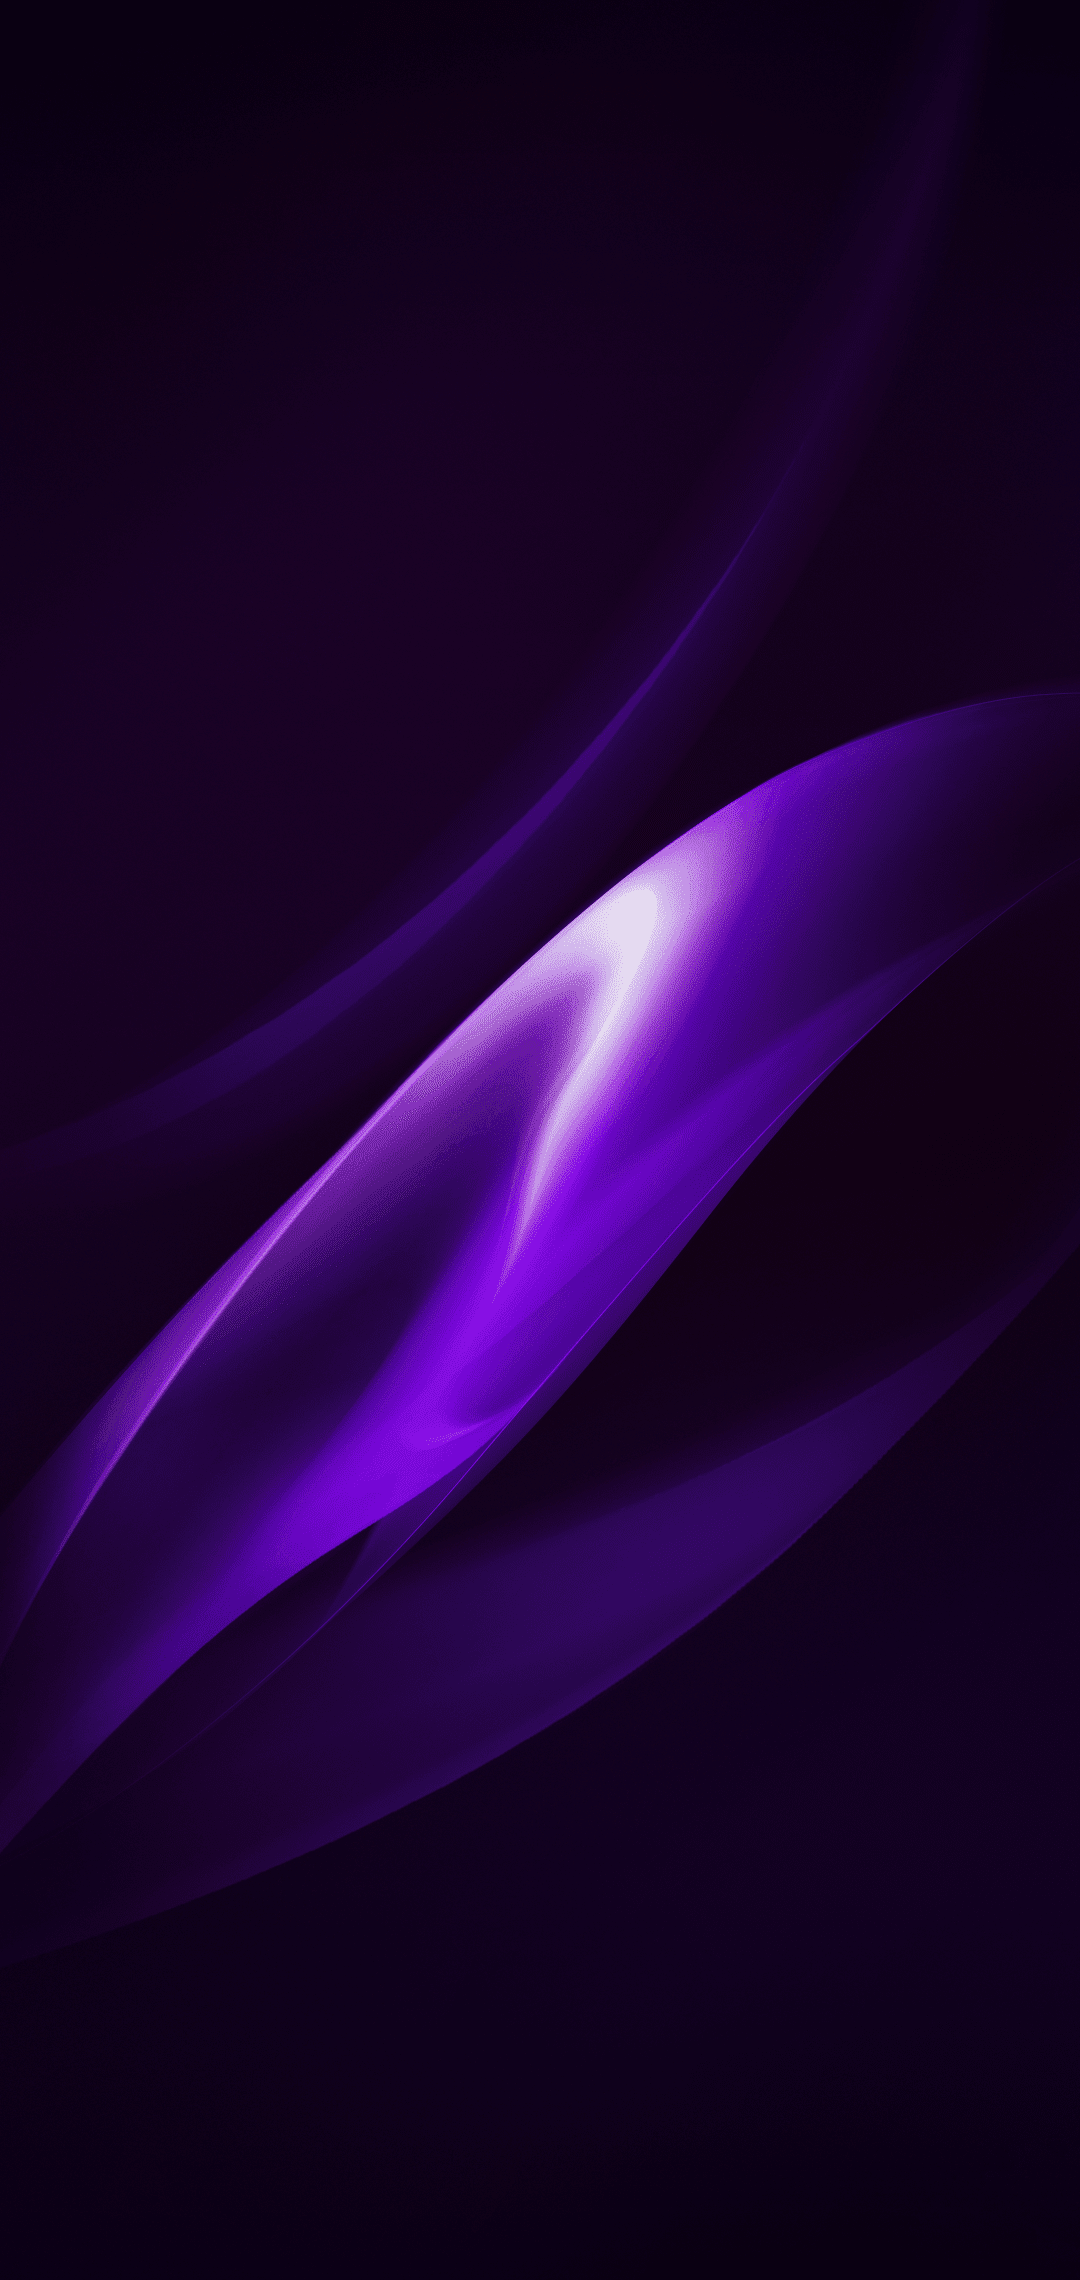 OPPO R15 Stock Wallpapers | Download 17